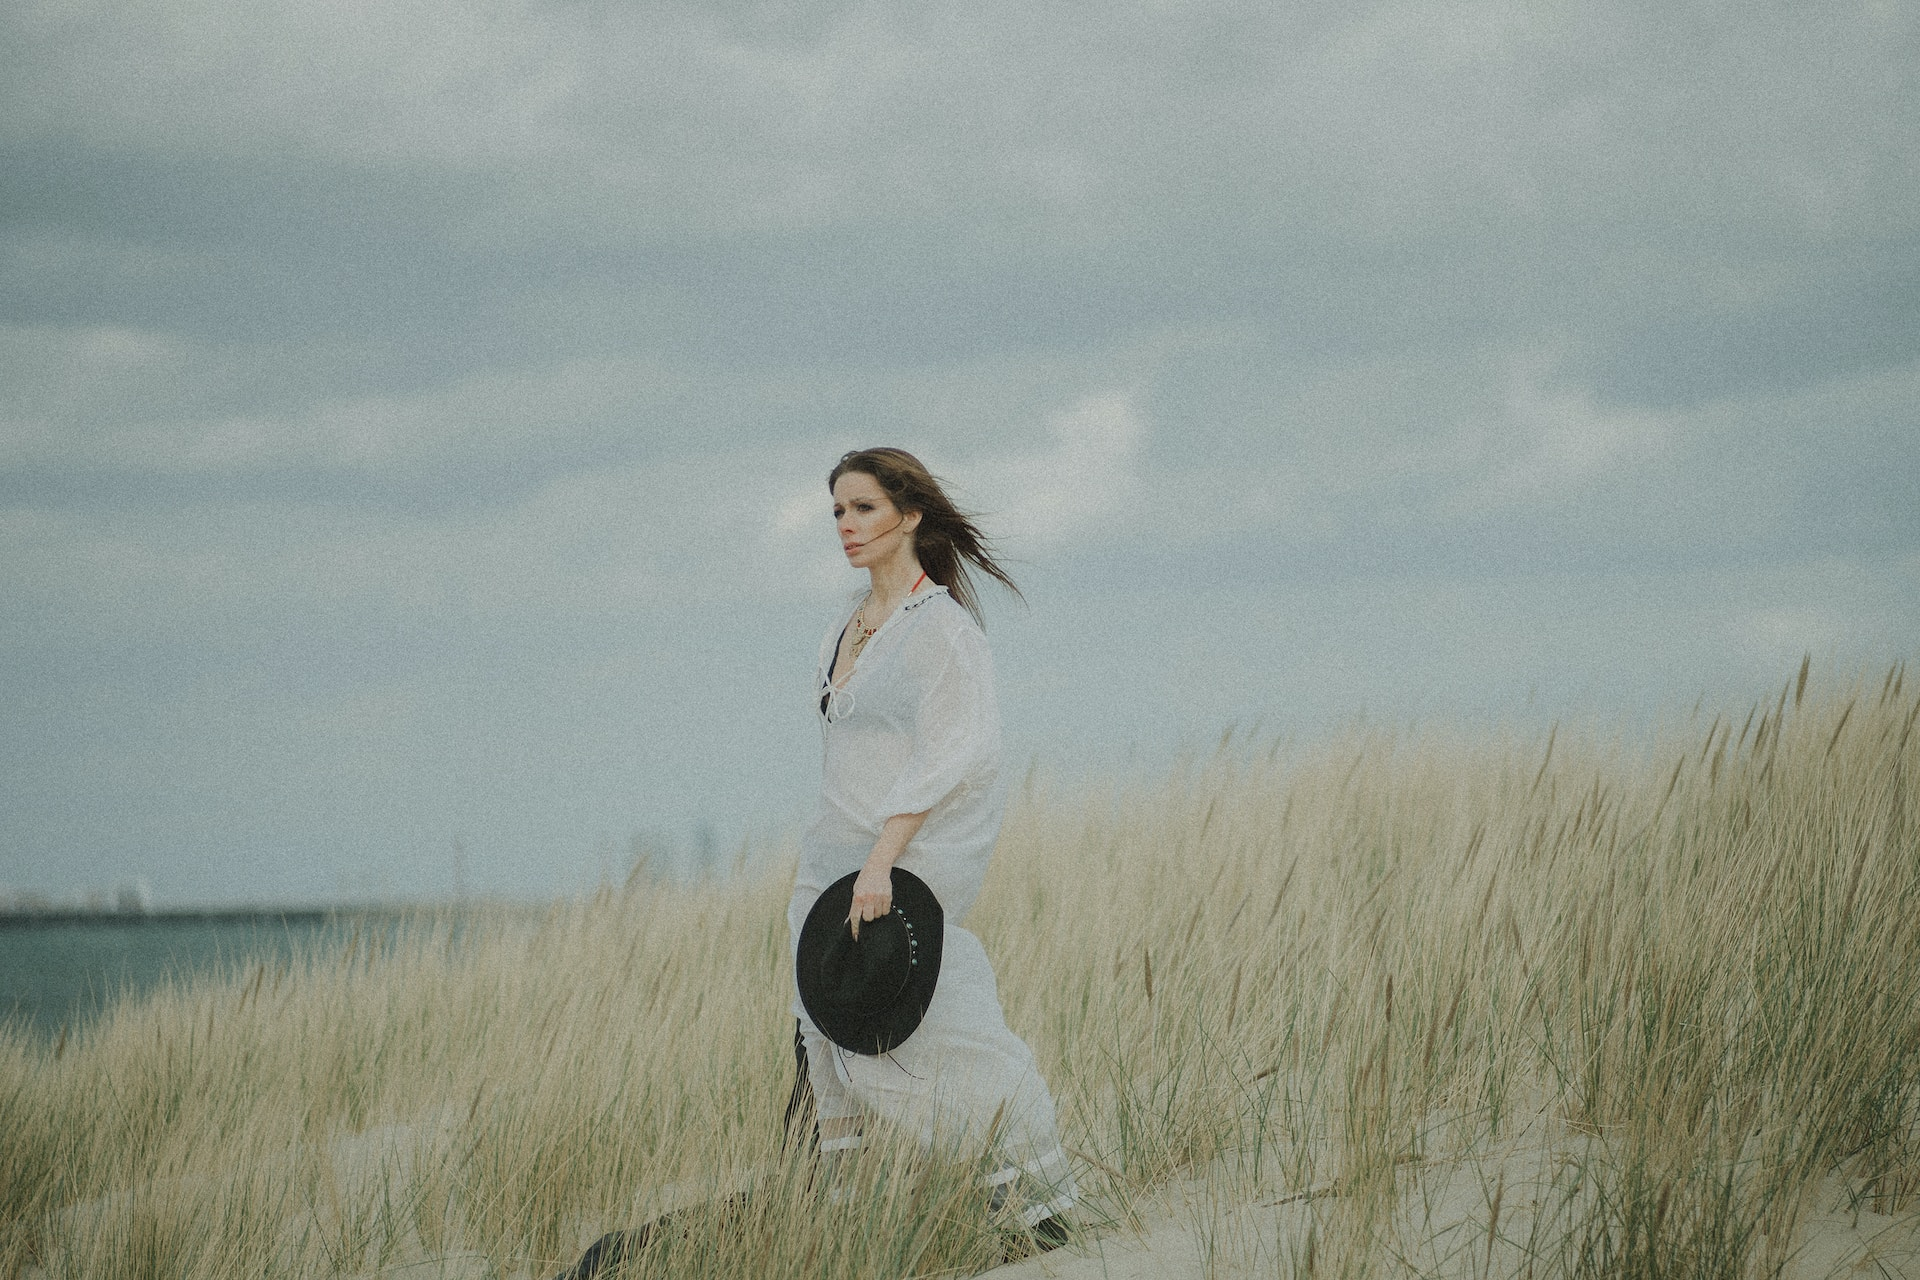 woman in white long sleeve shirt and black pants standing on green grass field under gray